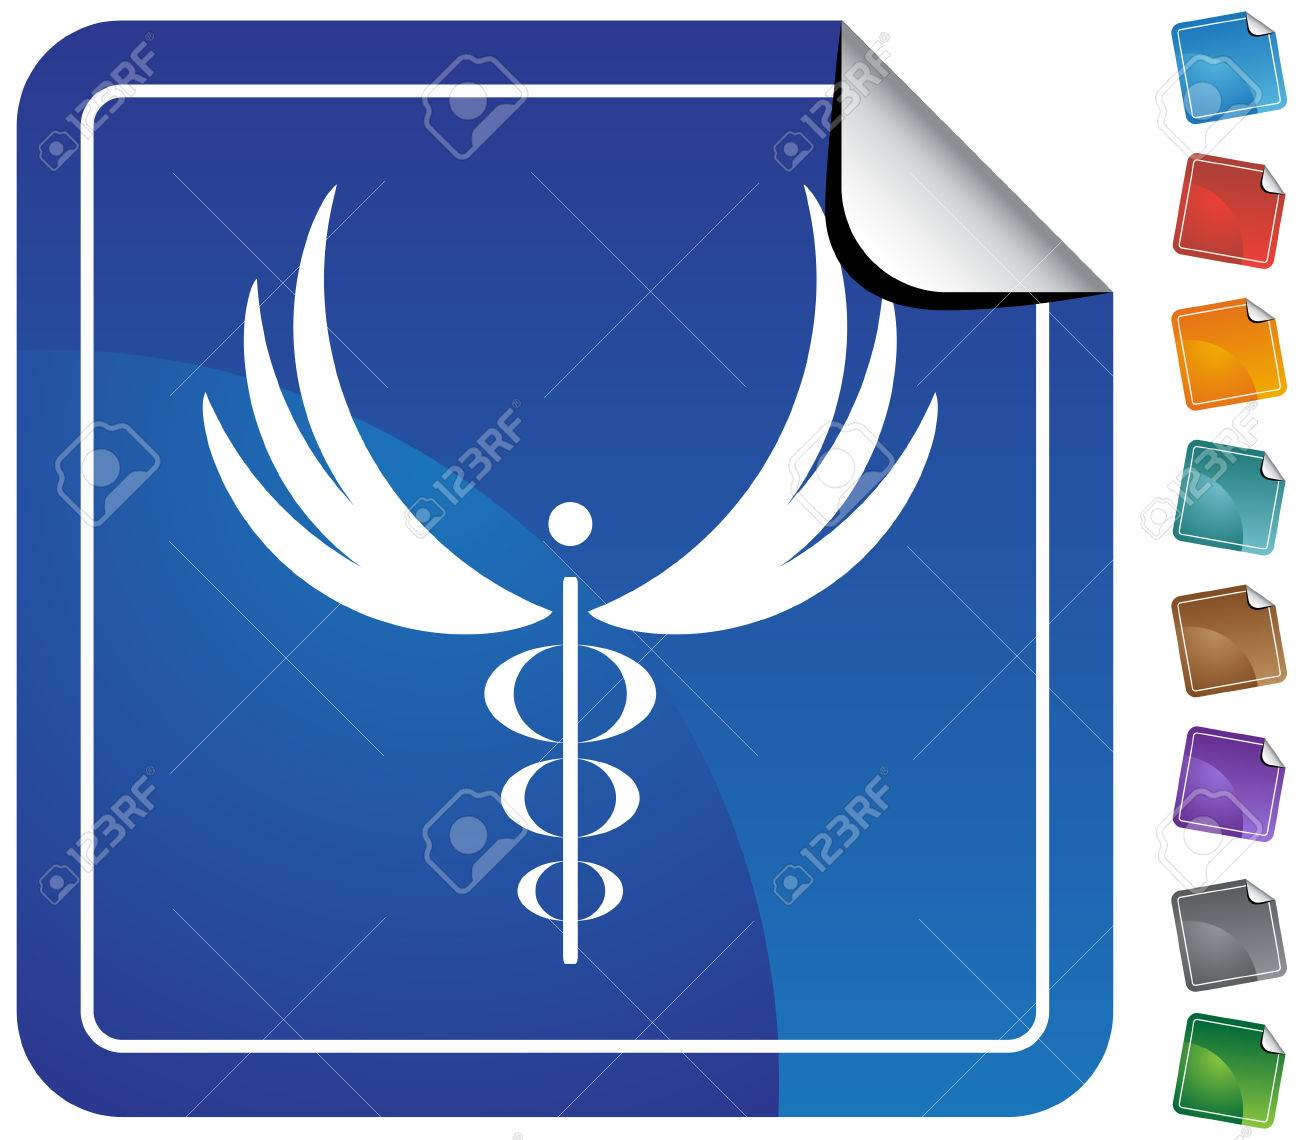 Caduceus Minimal Sticker : Medical symbol on a sticker. Stock Vector - 5163267